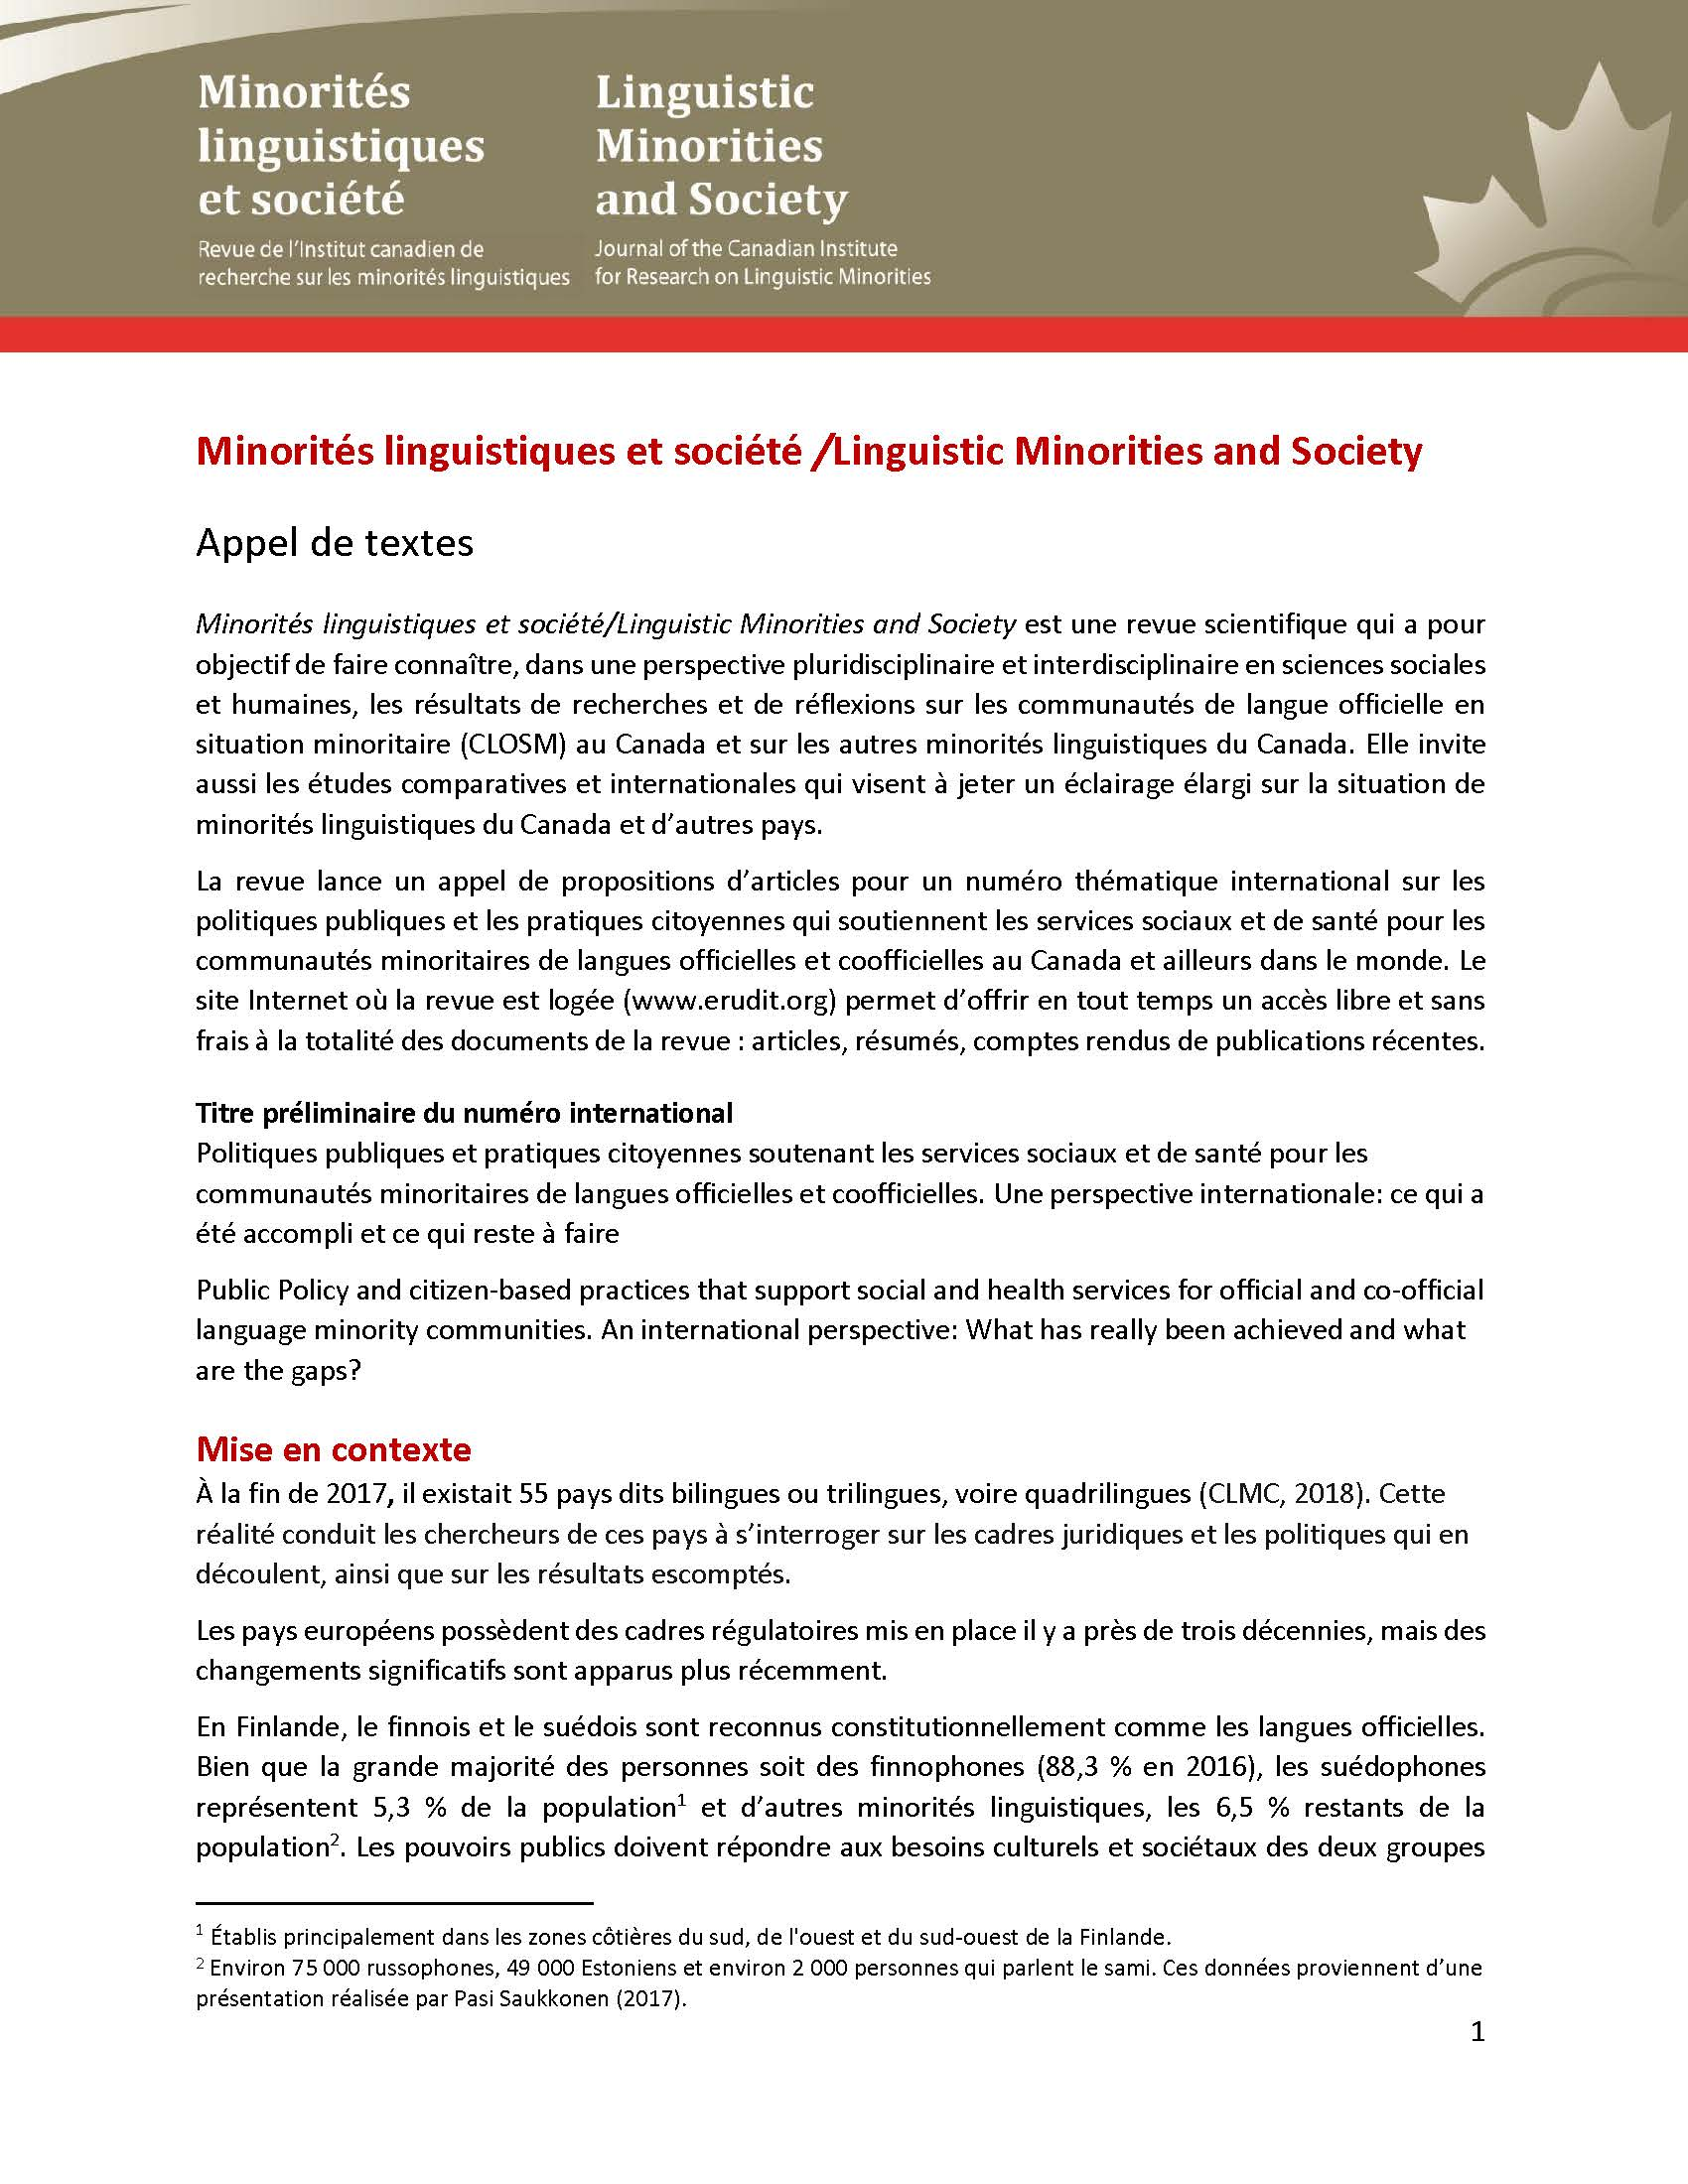 Appel Propositions Articles 28 03 2019 FR FINALE Page 1